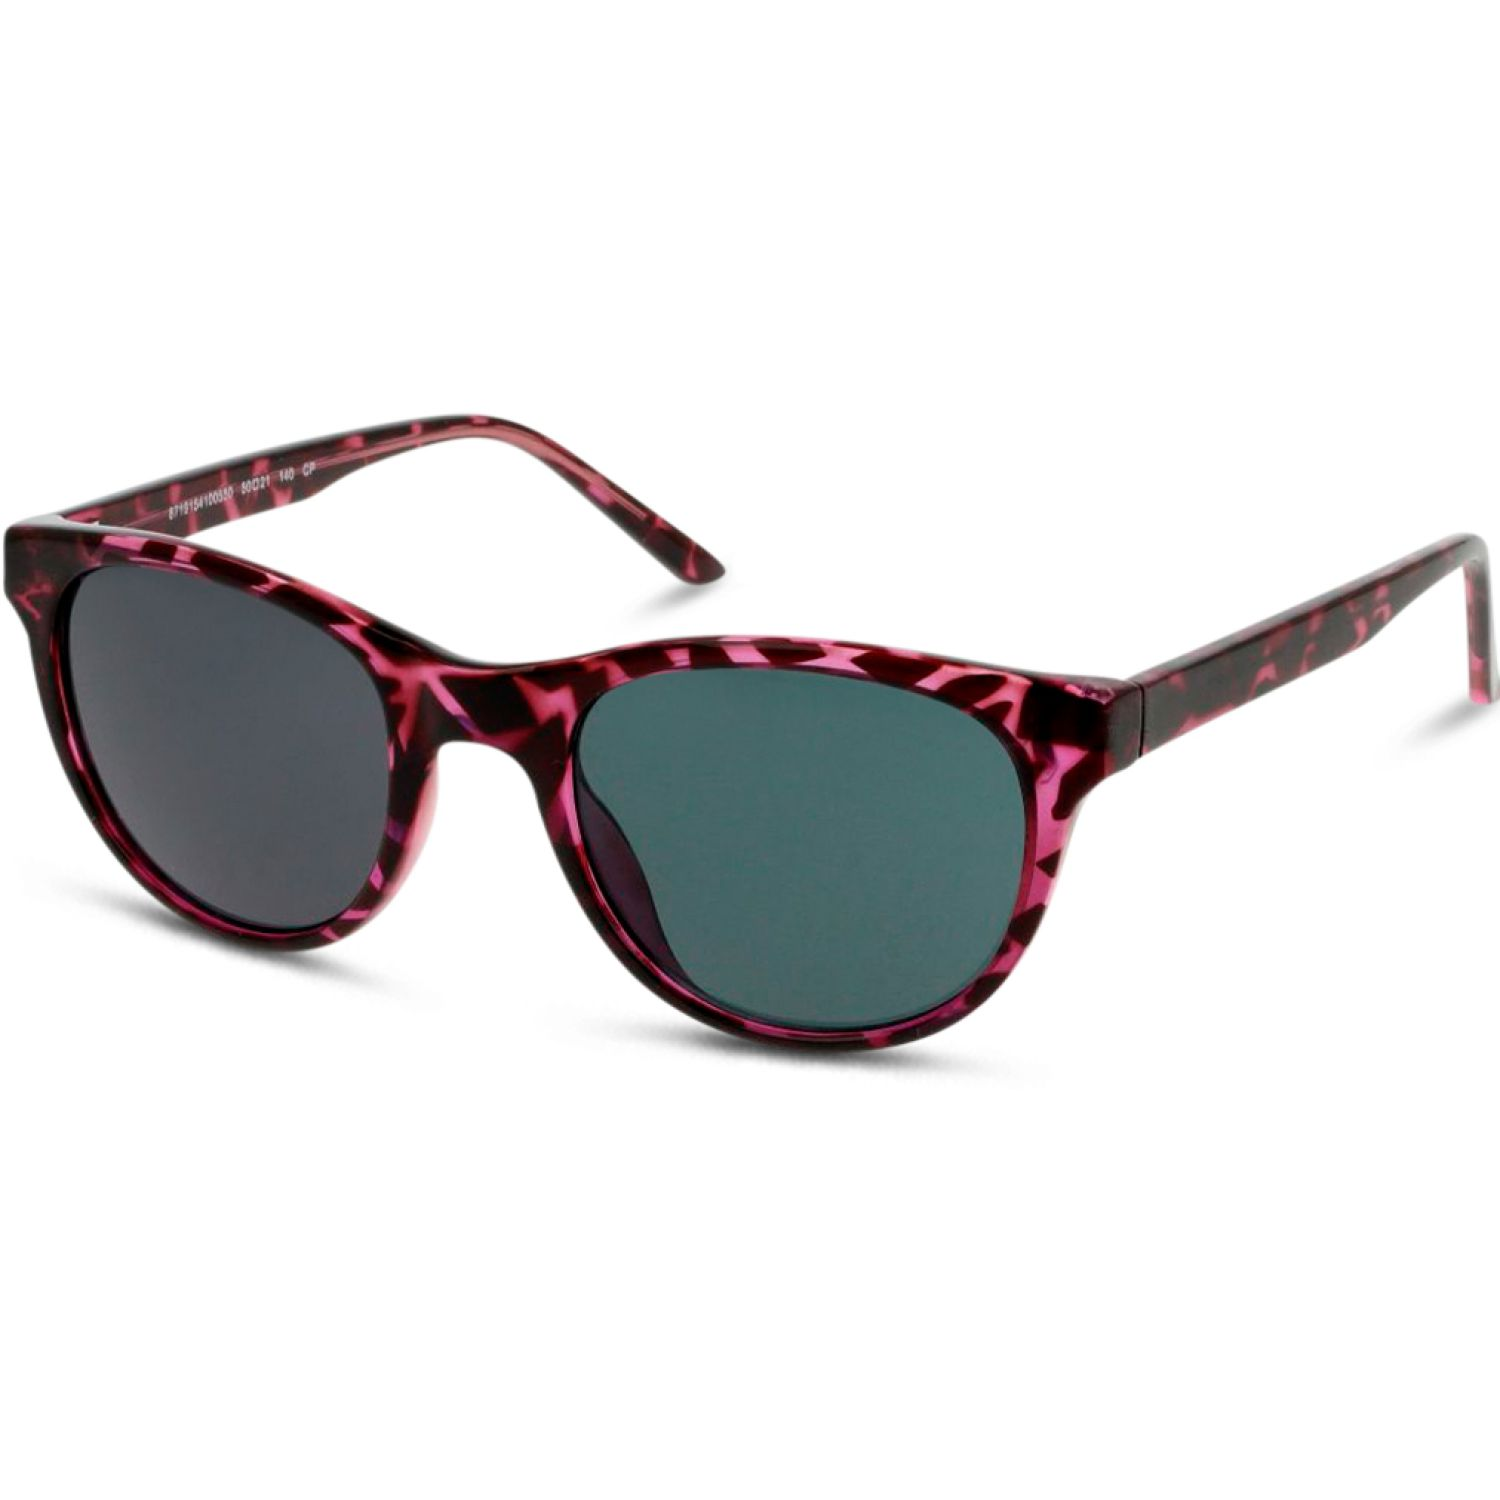 SEEN sesseef11#vhs Rojo Lentes de Sol